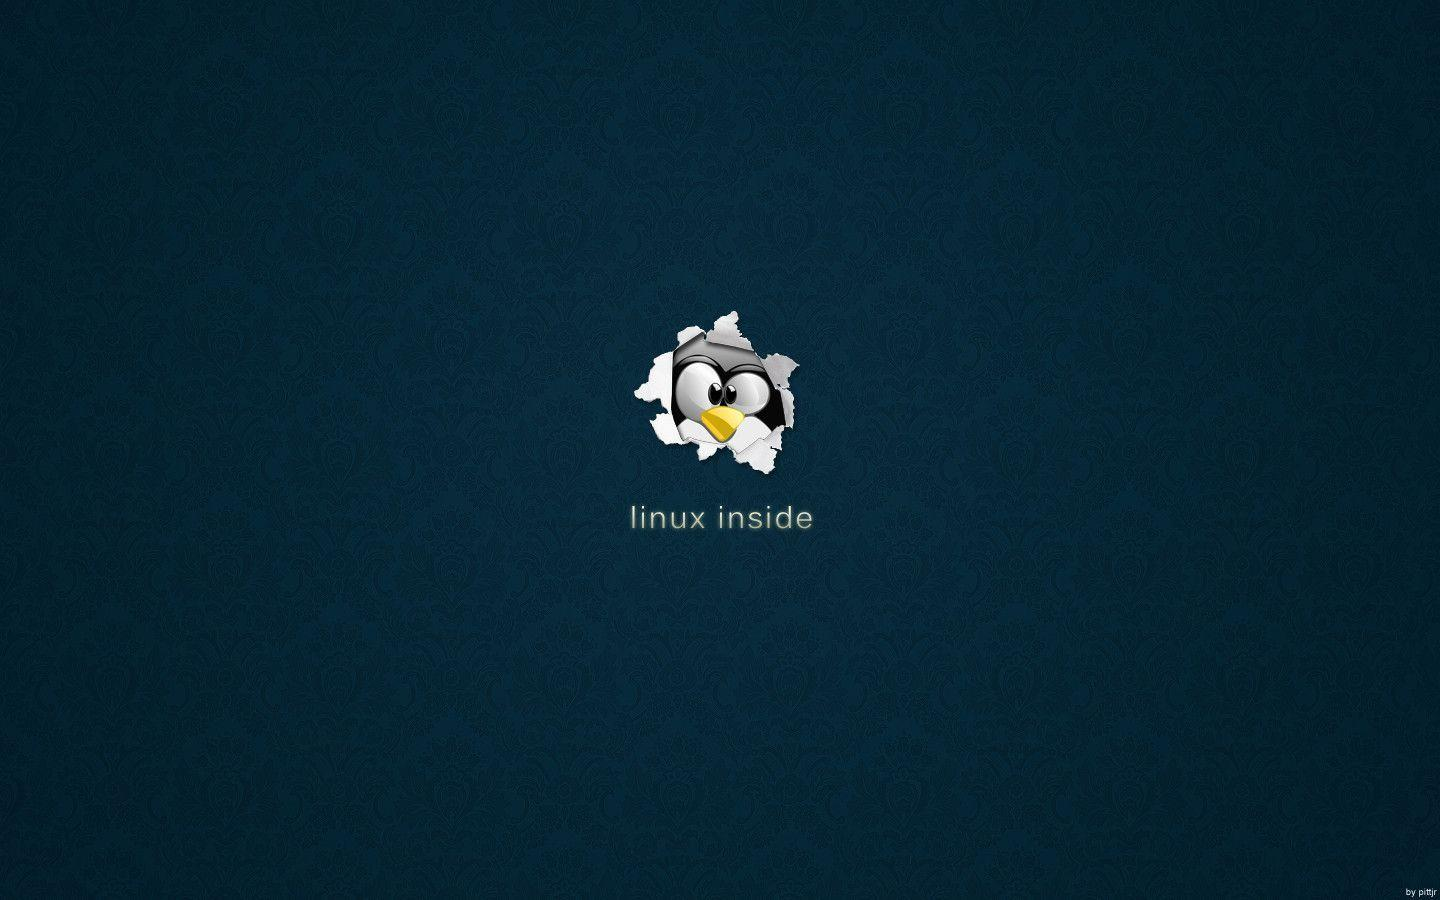 Wallpapers For > Linux Penguin Wallpaper 1920x1080